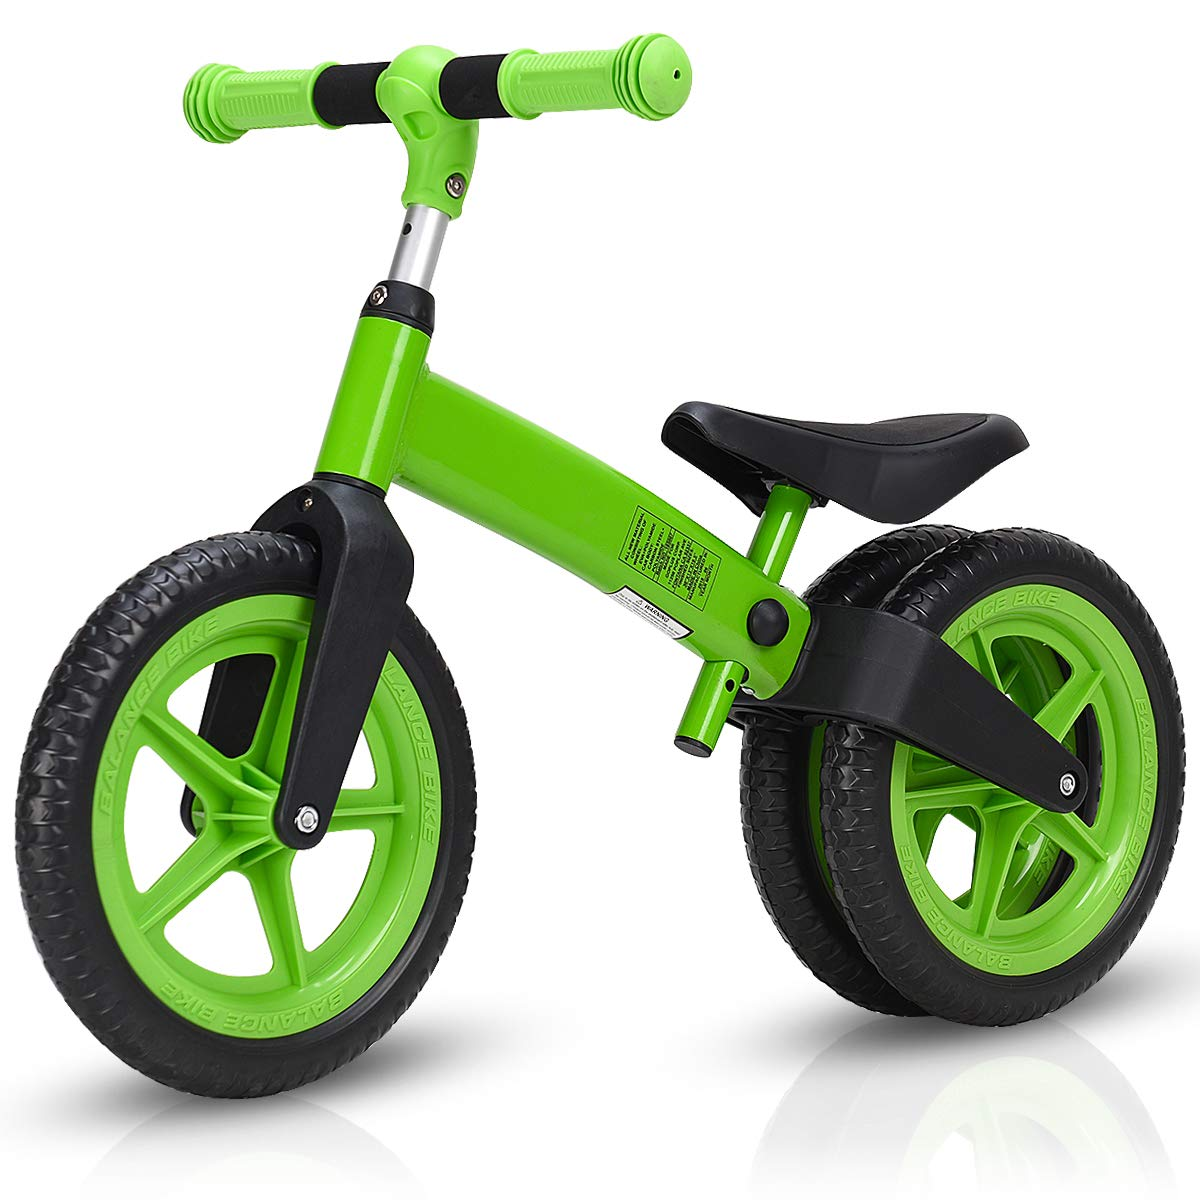 Costzon Kids Balance Bike, Classic Lightweight No-Pedal Learn to Ride Pre Bike w/Adjustable Handlebar & Seat Cycling Training for Kids and Toddlers, Walking Bicycle (Green)